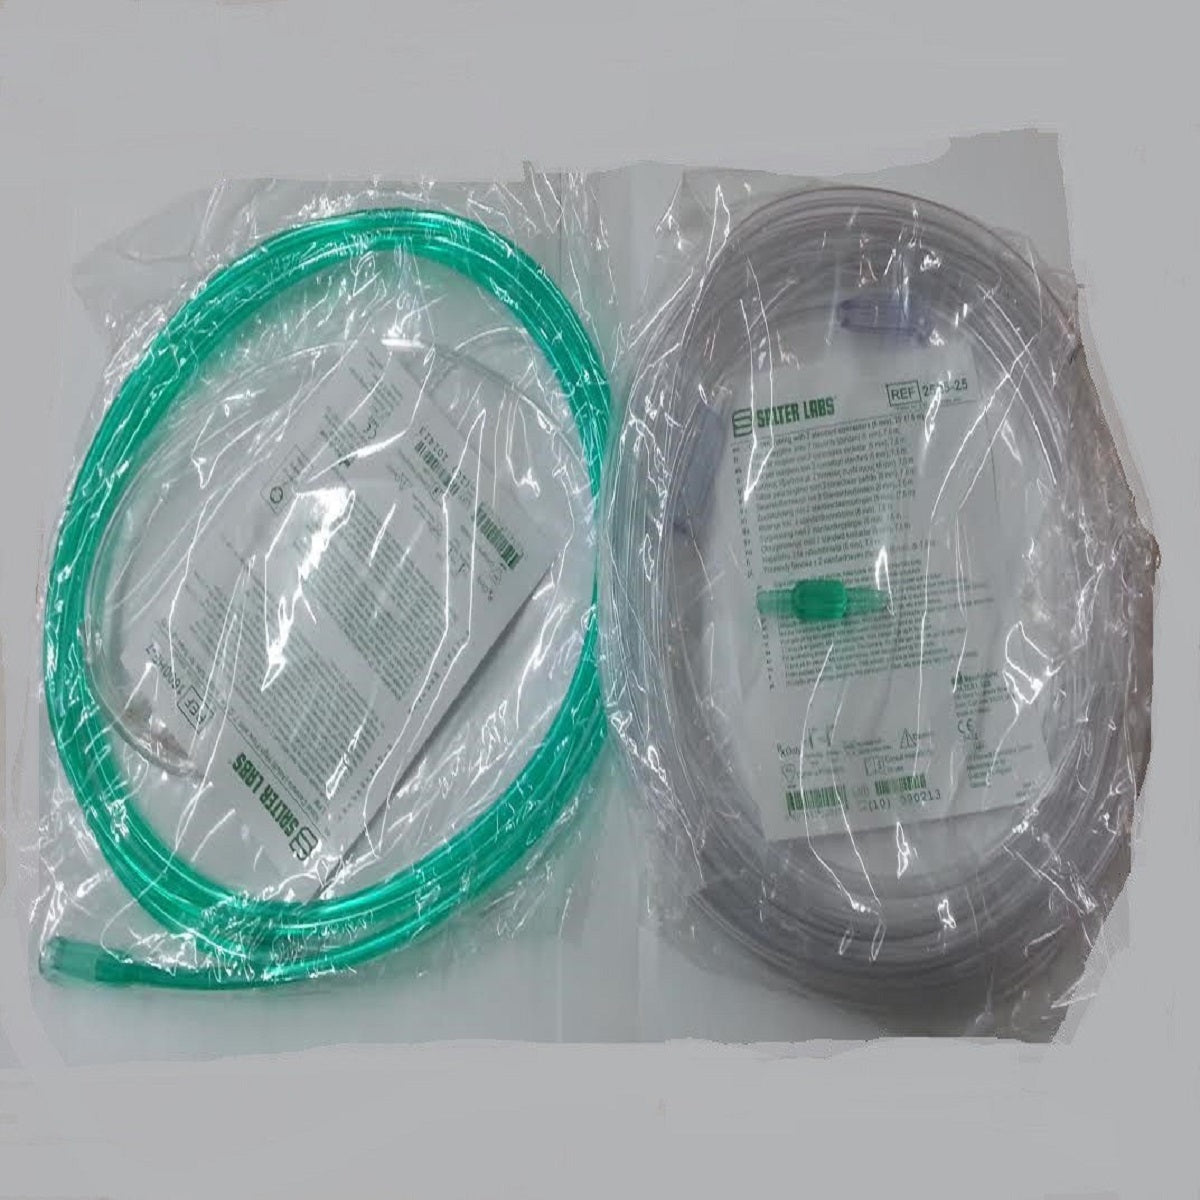 Oxygen Tubing Starter Pack. 25' Hose, 7' Cannula and Connector!